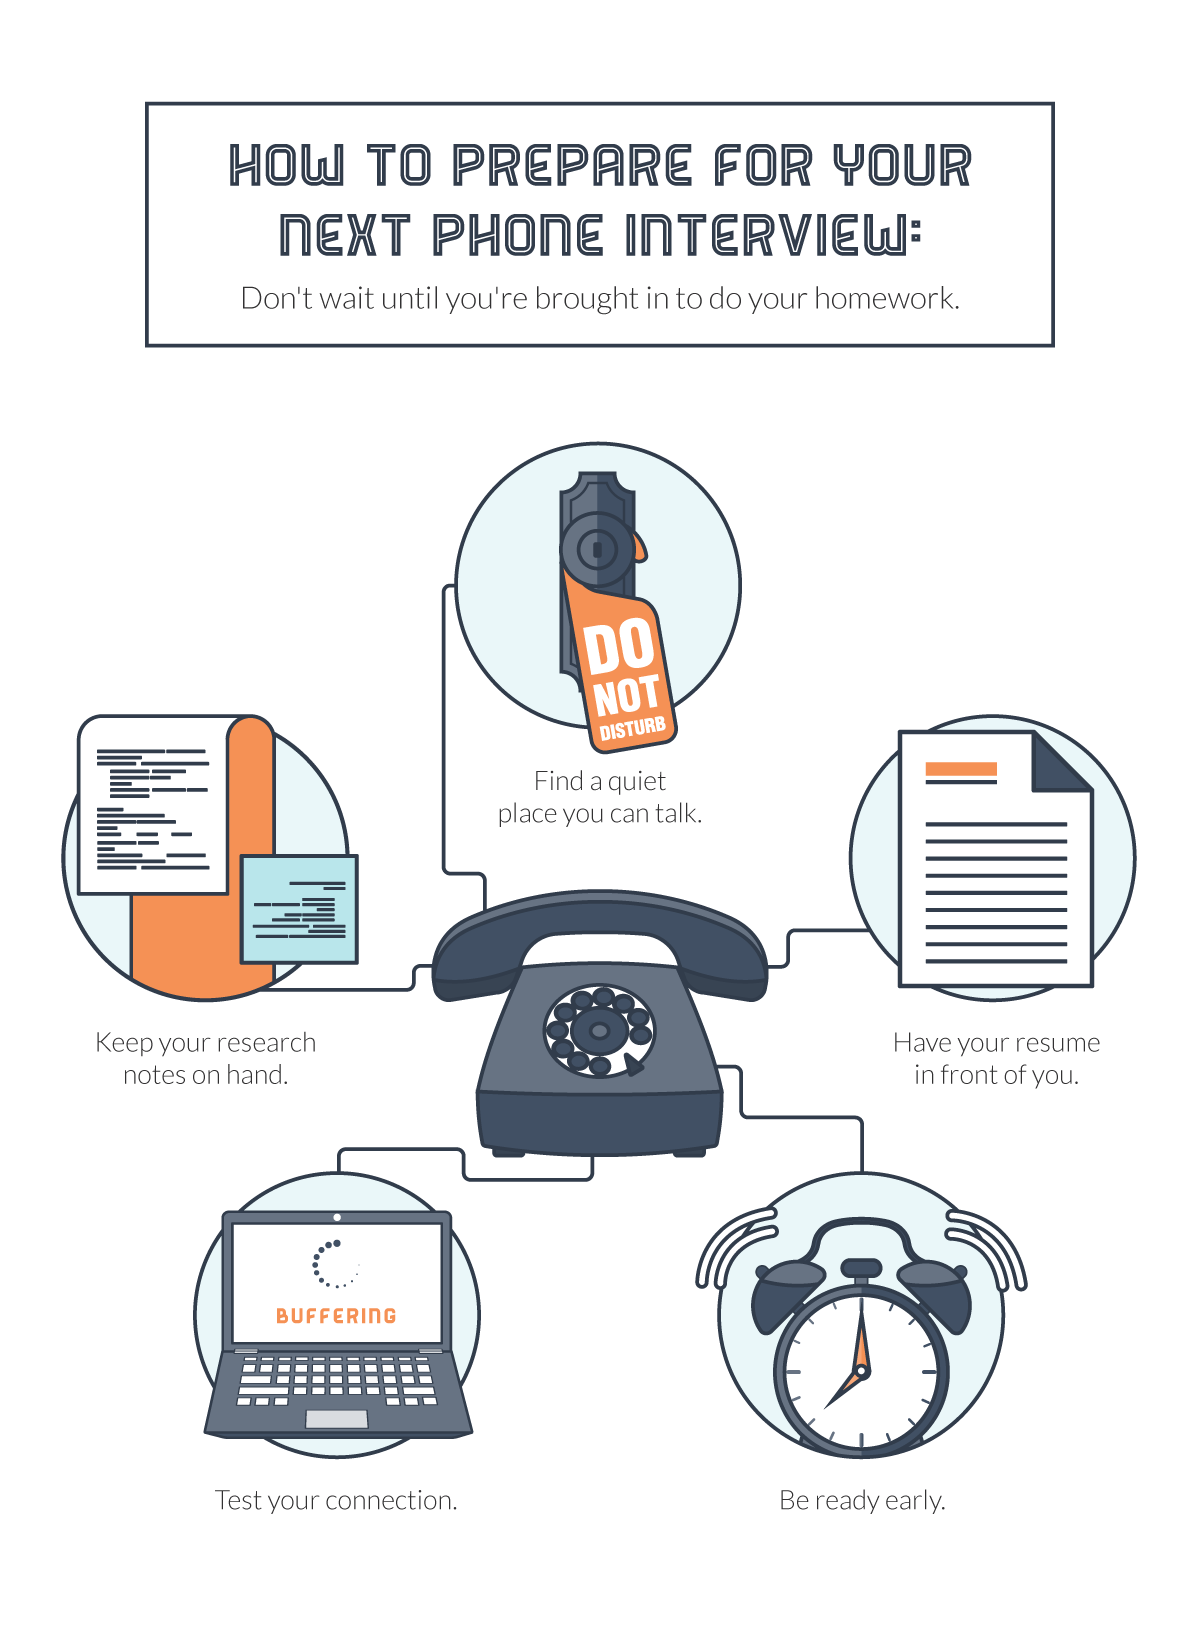 Treat your phone interview just like you would an in